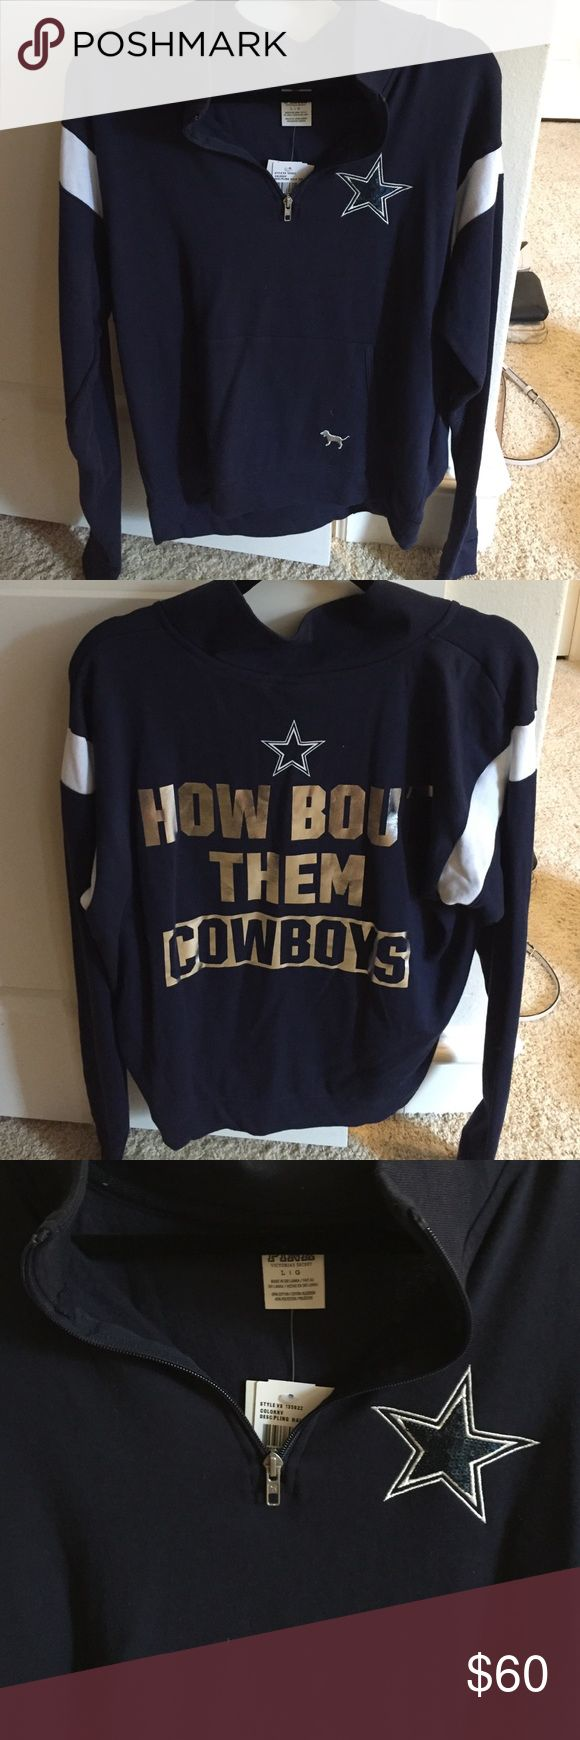 Victoria's Secret Dallas Cowboys Quarter-zip Never been worn, thin, Dallas Cowboys pullover! Victoria's Secret Sweaters